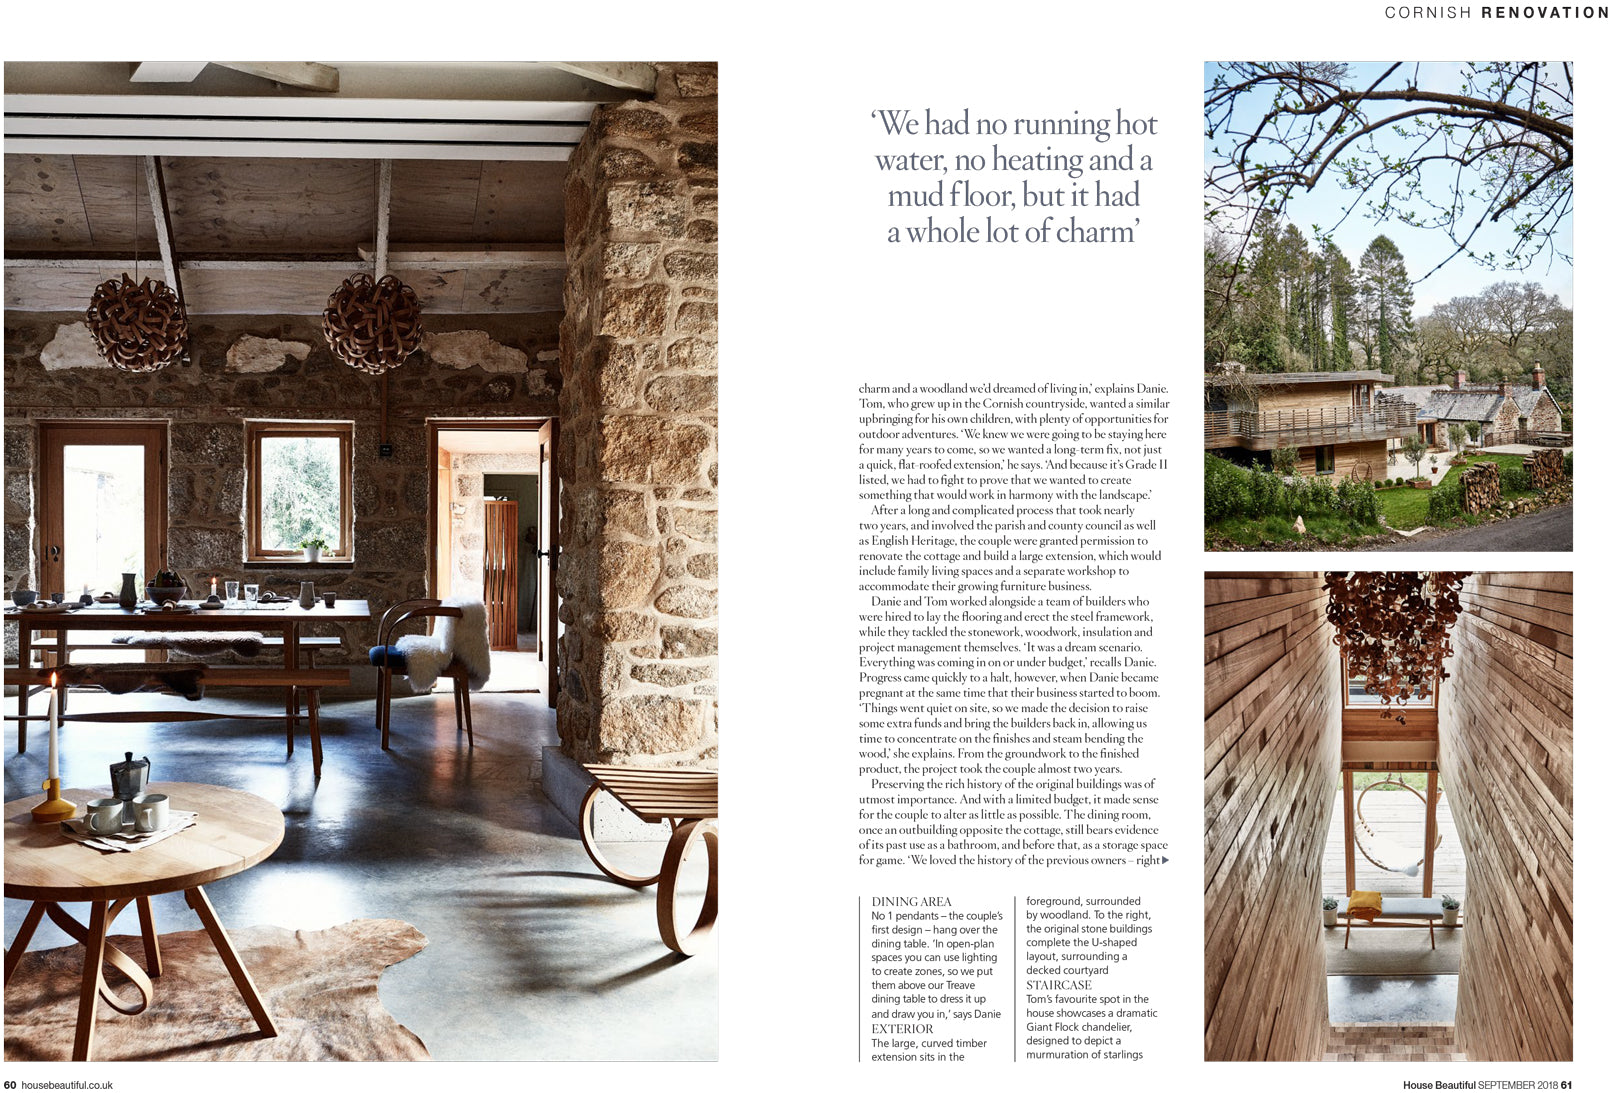 House Beautiful Feature The Grand Designs Home In A Modern Rustic Spec Tom Raffield